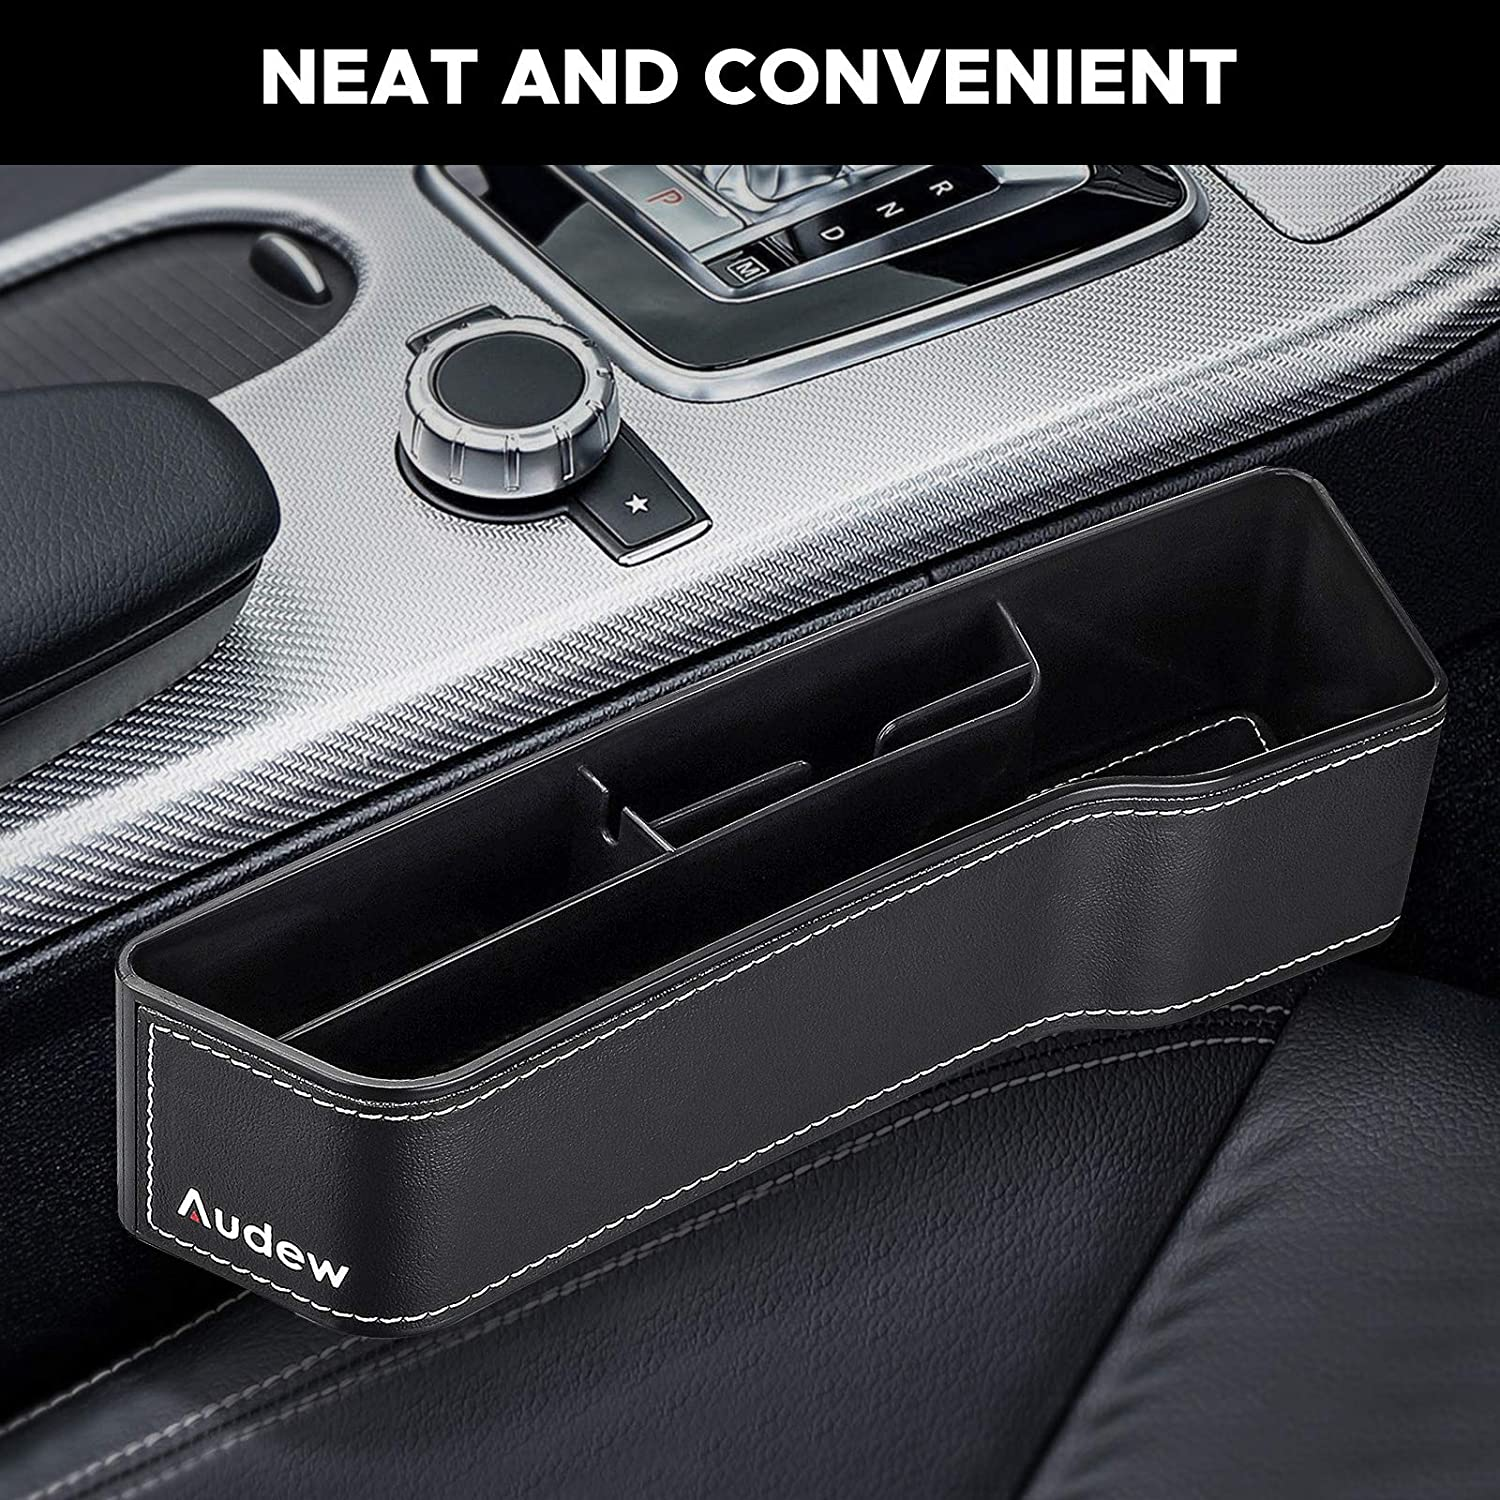 Multifunctional Seat Gap Storage Box with Non-Slip Mat 2 Pack PU Leather Car Console Side Organizer with Cup Holder Audew Car Seat Gap Filler